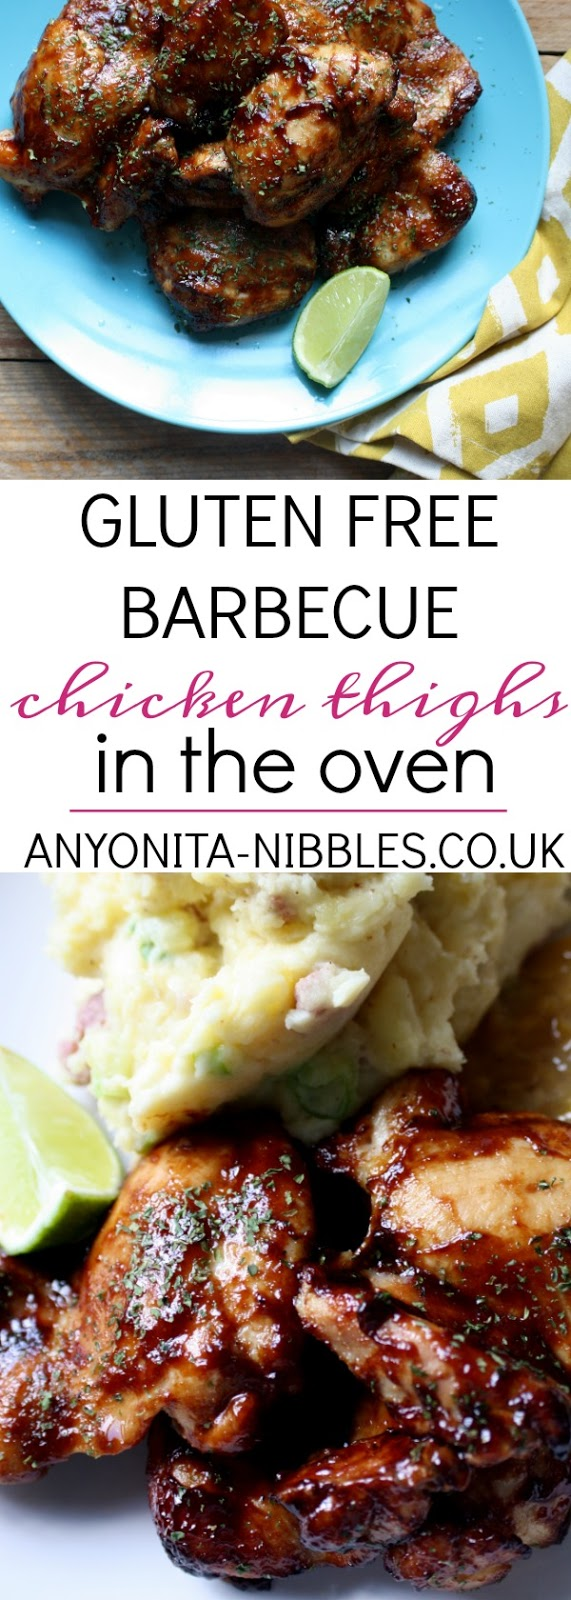 Gluten Free Oven Barbecued Chicken Thighs from Anyonita-Nibbles